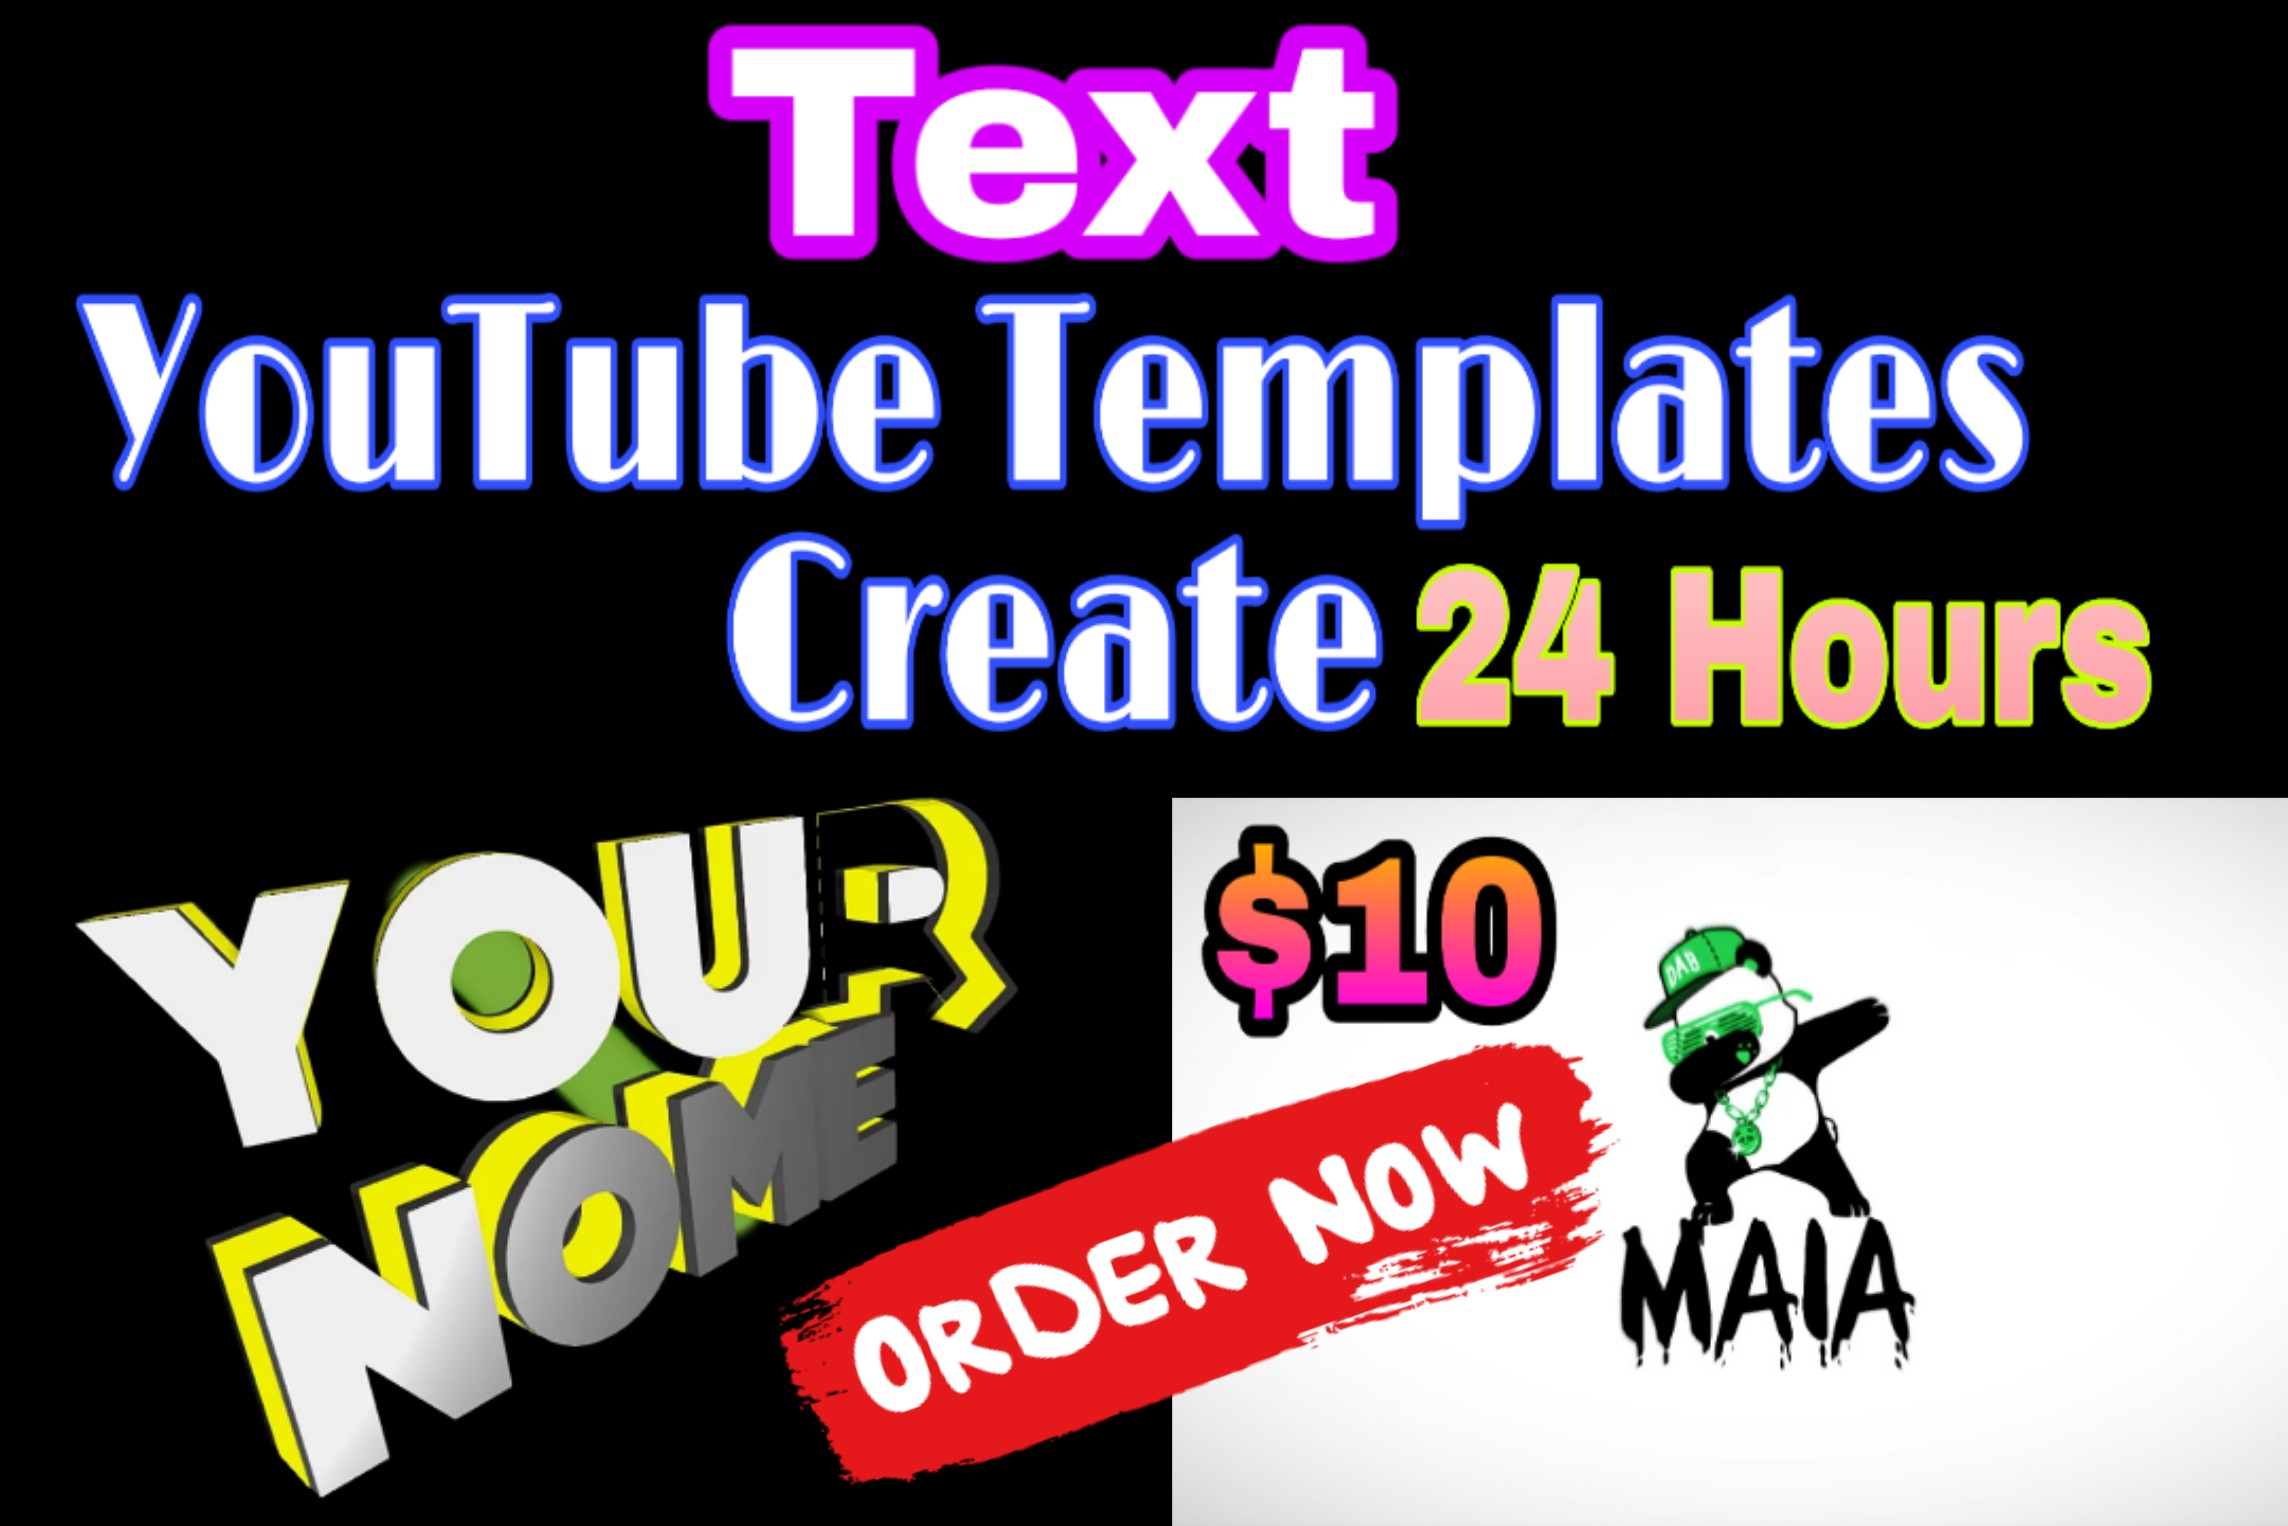 I well do text templates create on youtube